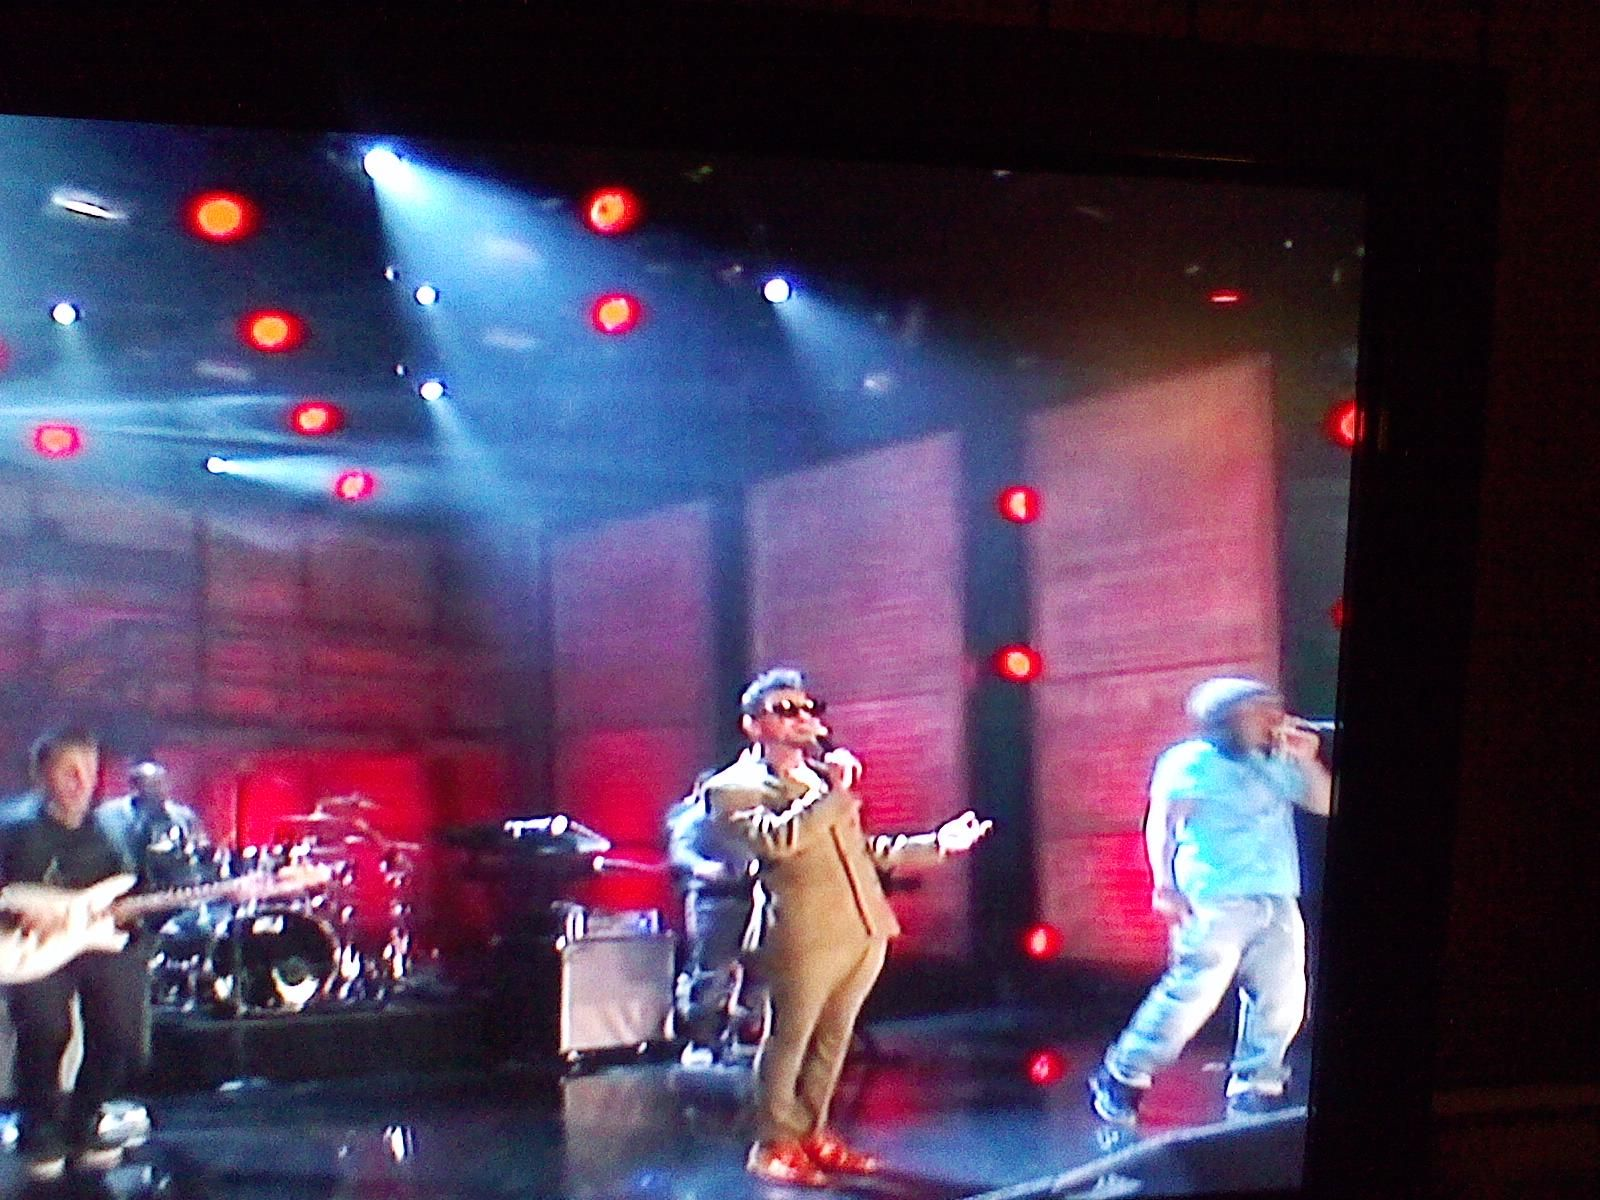 Miguel and wale performing lotus flower bomb on conan feb 12 2012 miguel and wale performing lotus flower bomb on conan feb 12 2012 izmirmasajfo